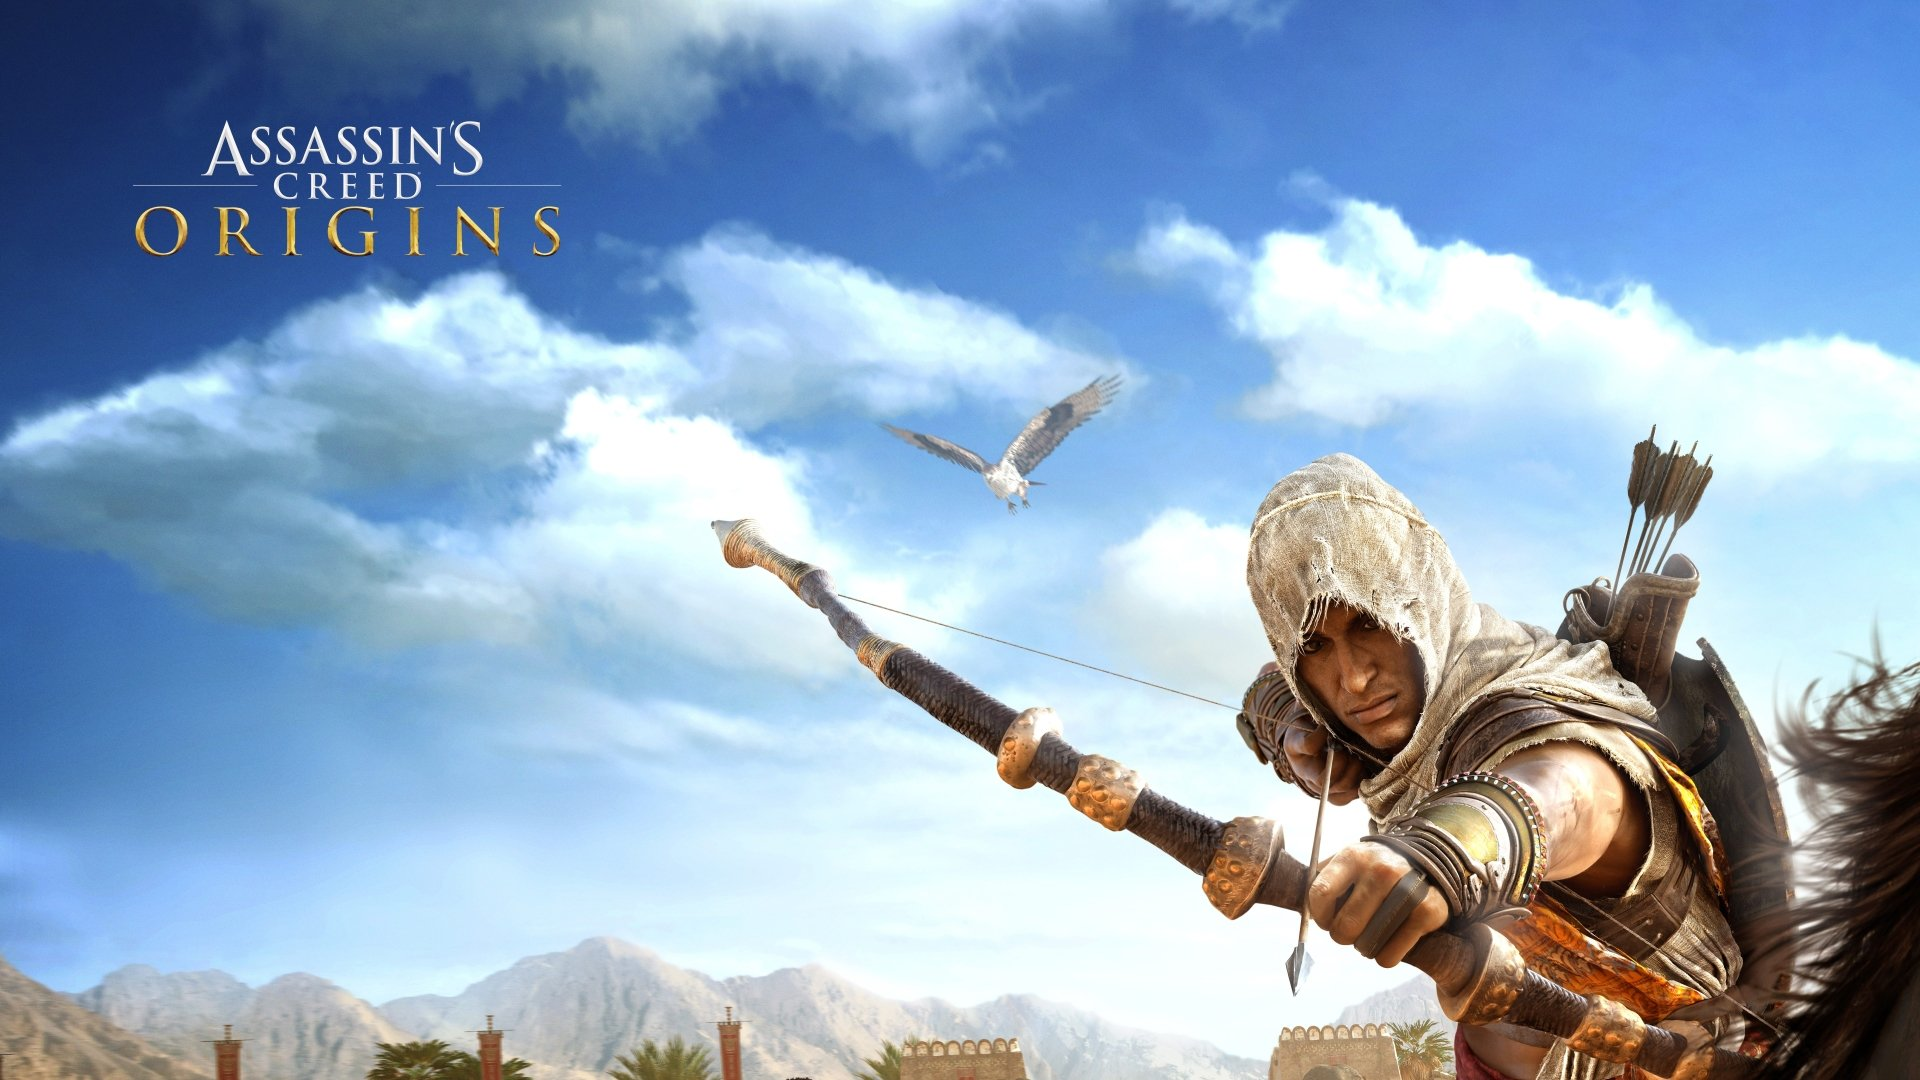 Assassin's Creed Origins Bayek Of Siwa Wallpaper HD 4k